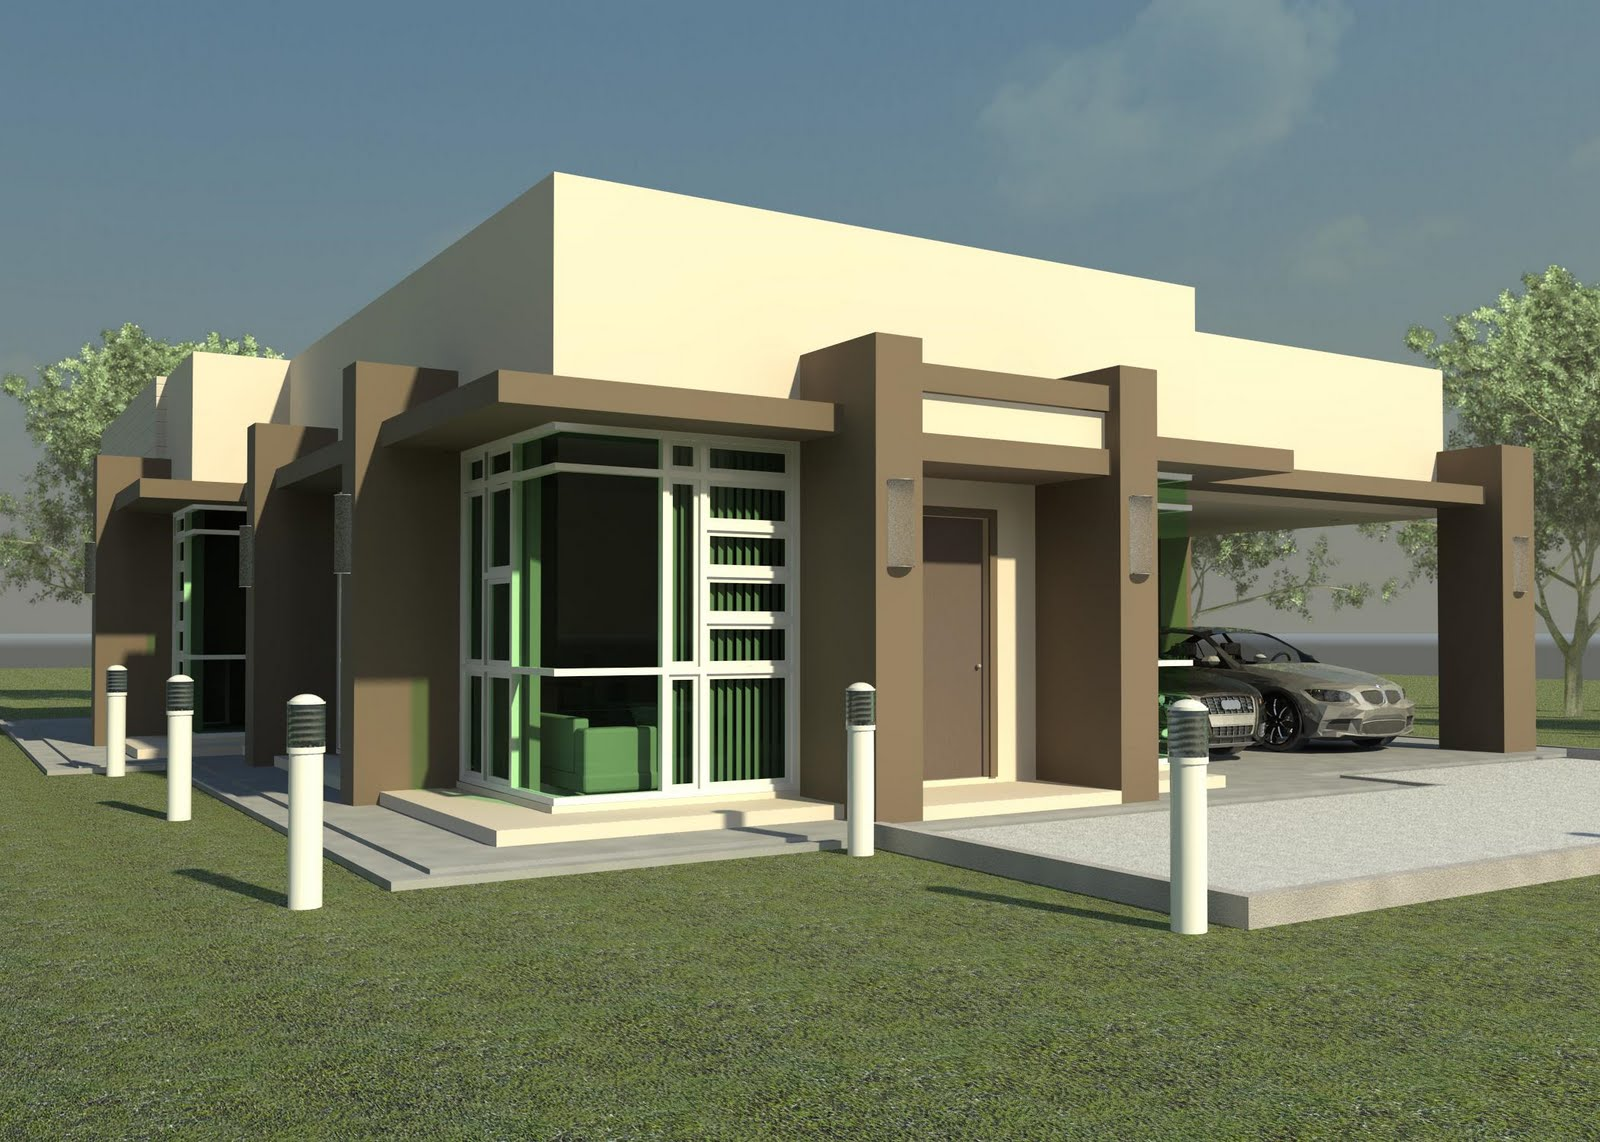 New home designs latest modern small homes designs exterior for Modern house design outside